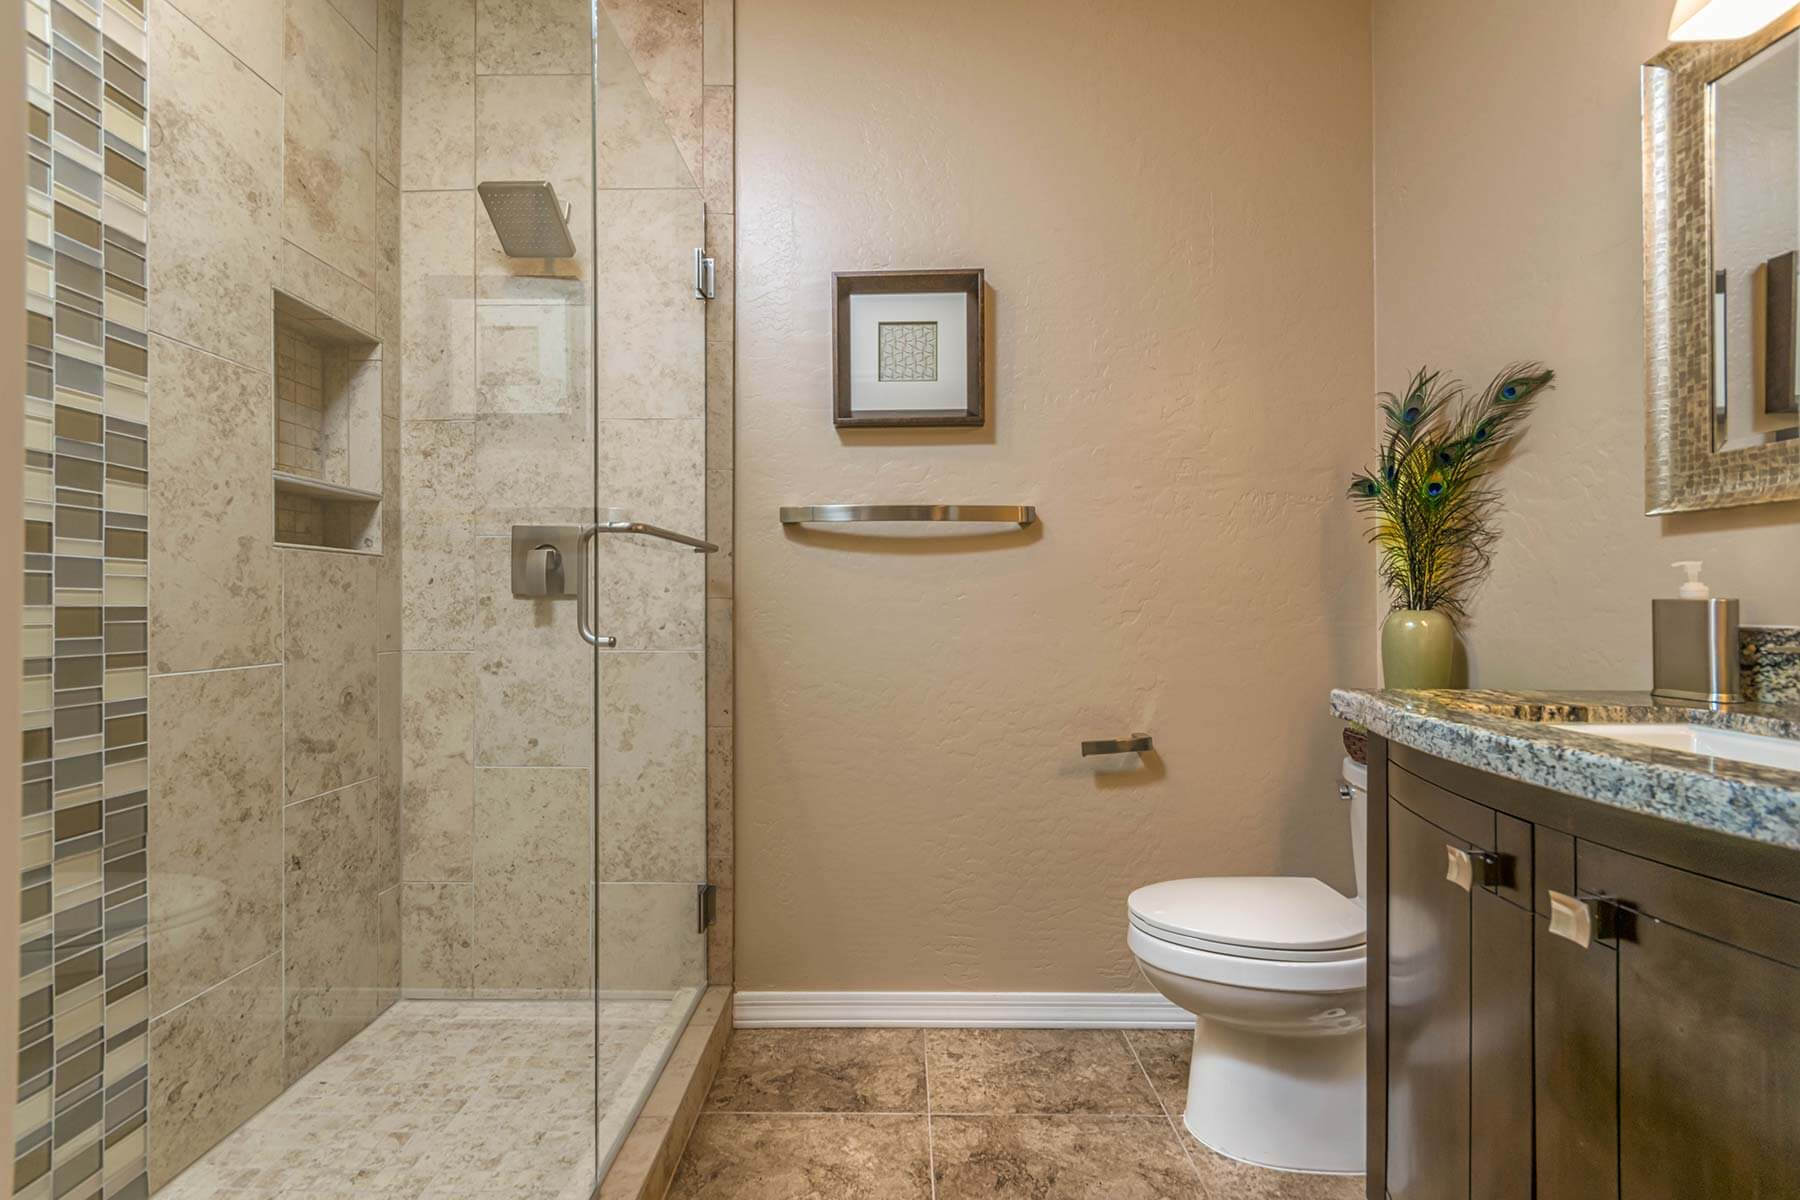 Bathroom Remodeling Phoenix Az What You Should Expect From A Great Bathroom Remodeling Process